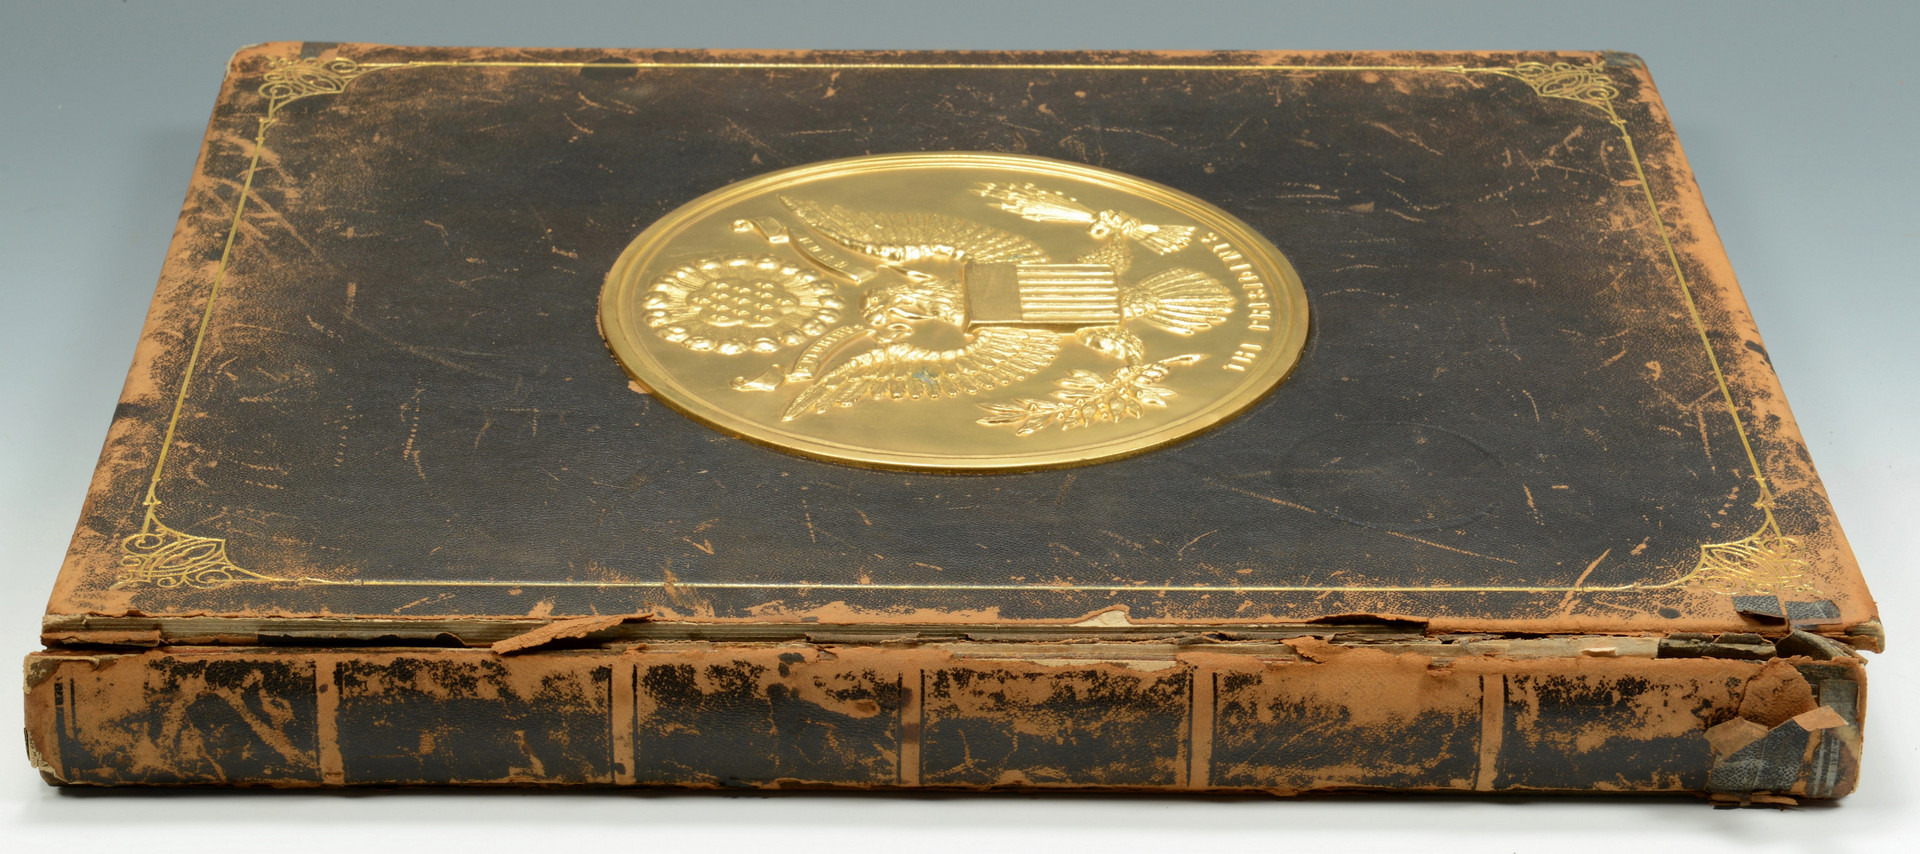 Lot 869: Large folio book, The Presidents